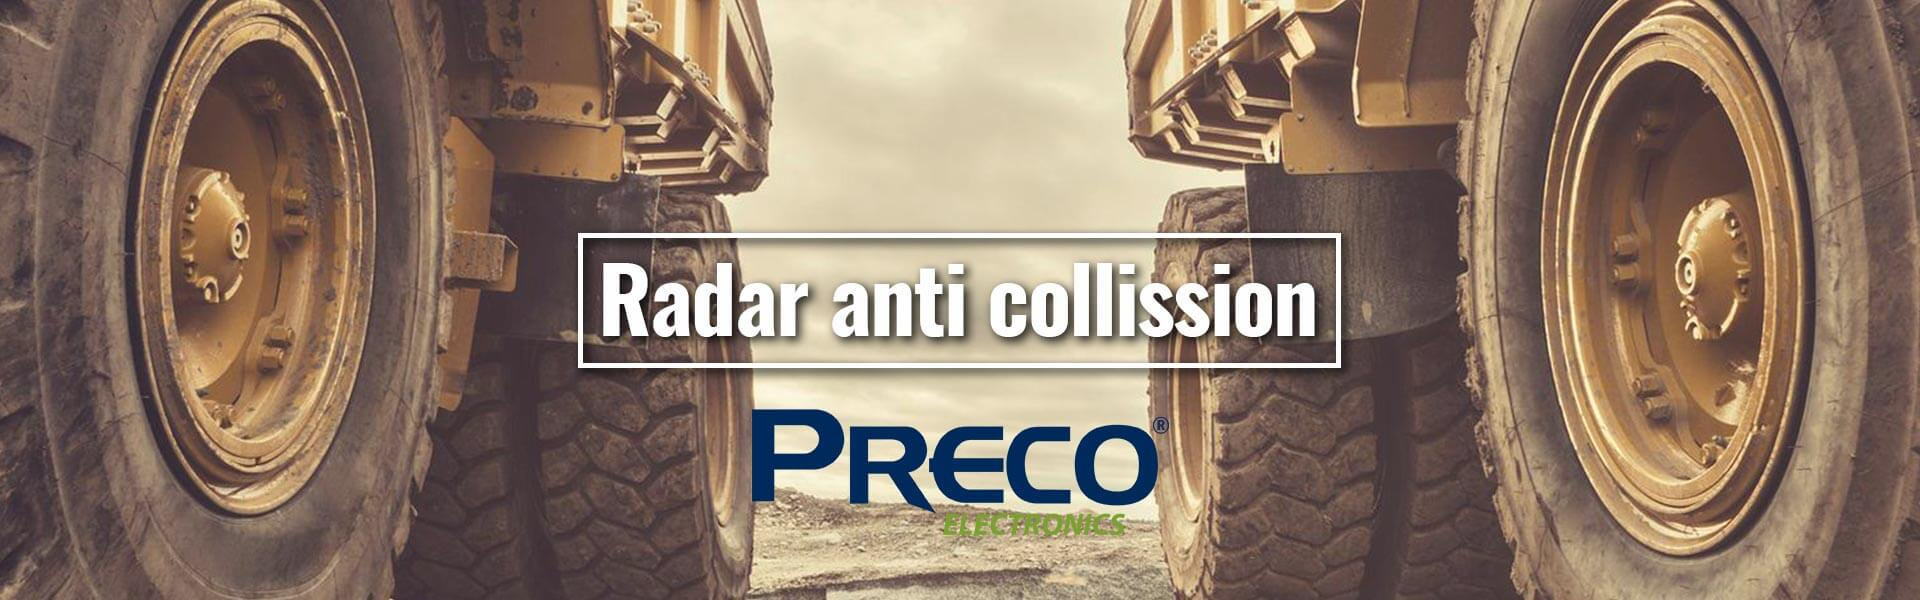 Preco anti collision